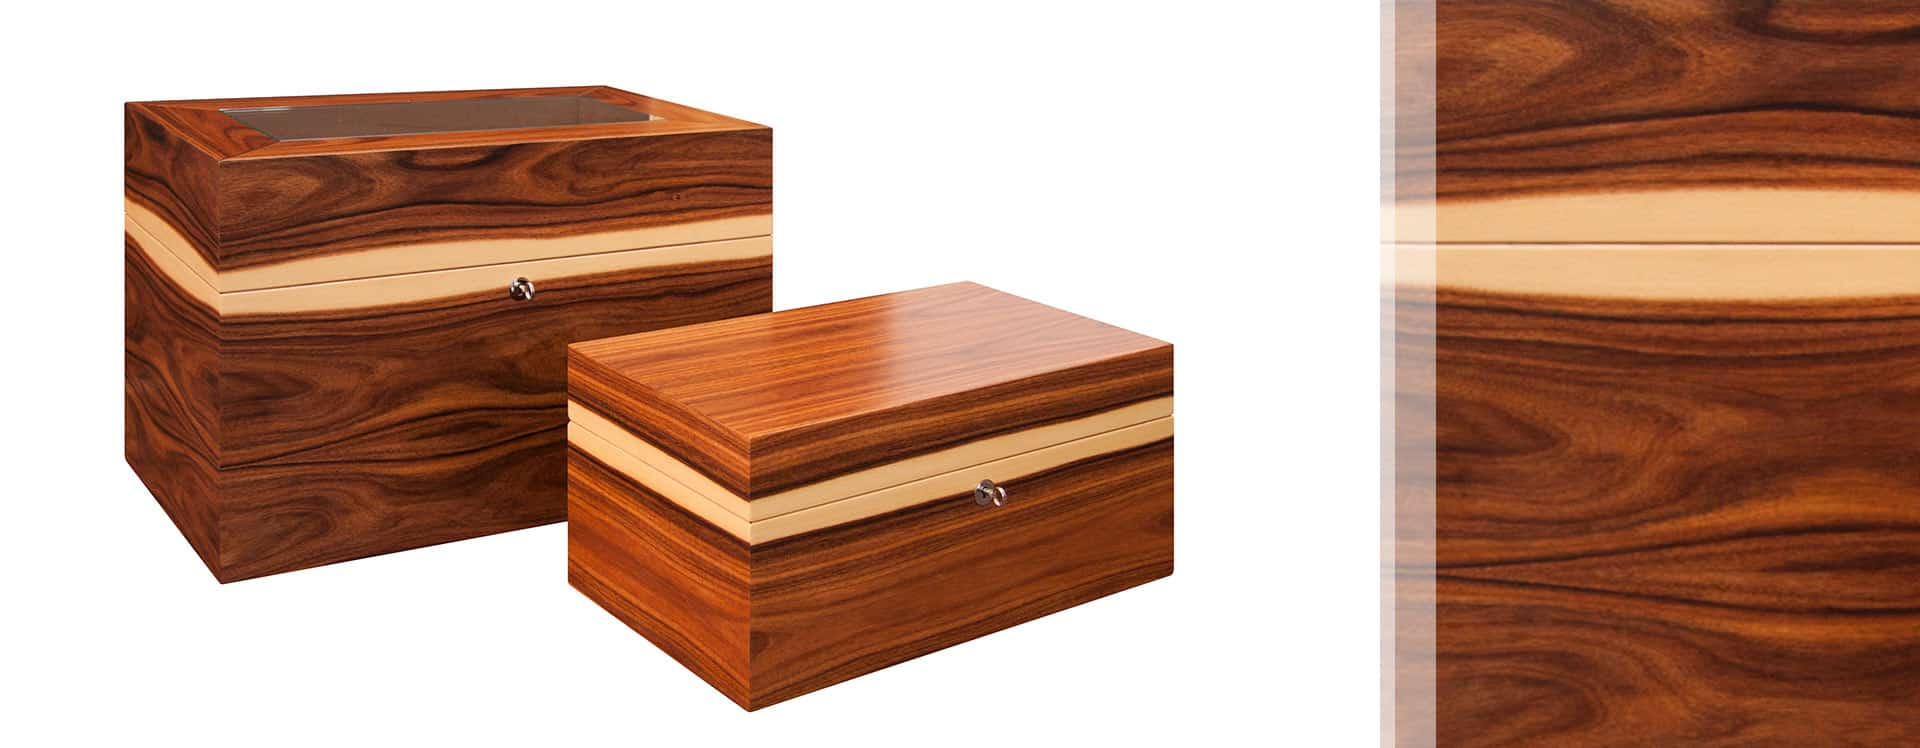 Father and son Cube GERBER Humidors